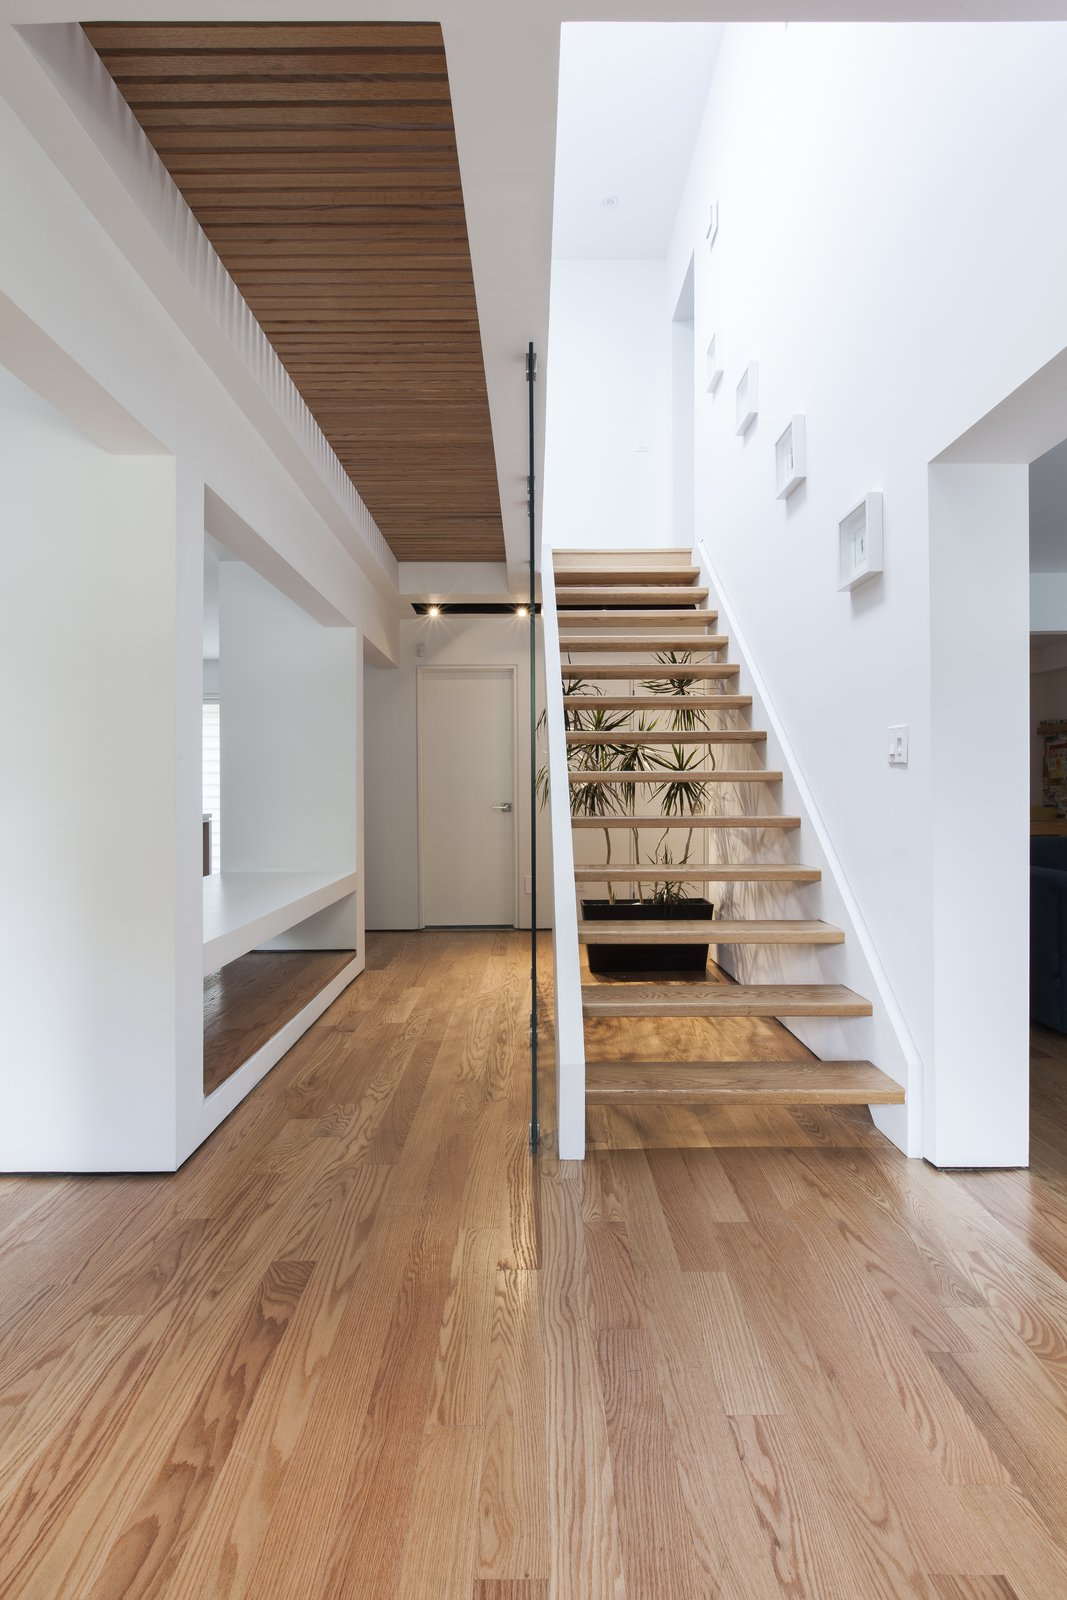 A staircase forms the core of the 1,800-square-foot home, with a symmetrical alcove on either side. The steps, hardwood floors, and slatted bridge on the second floor are made of white oak, providing a rich contrast with its white walls.